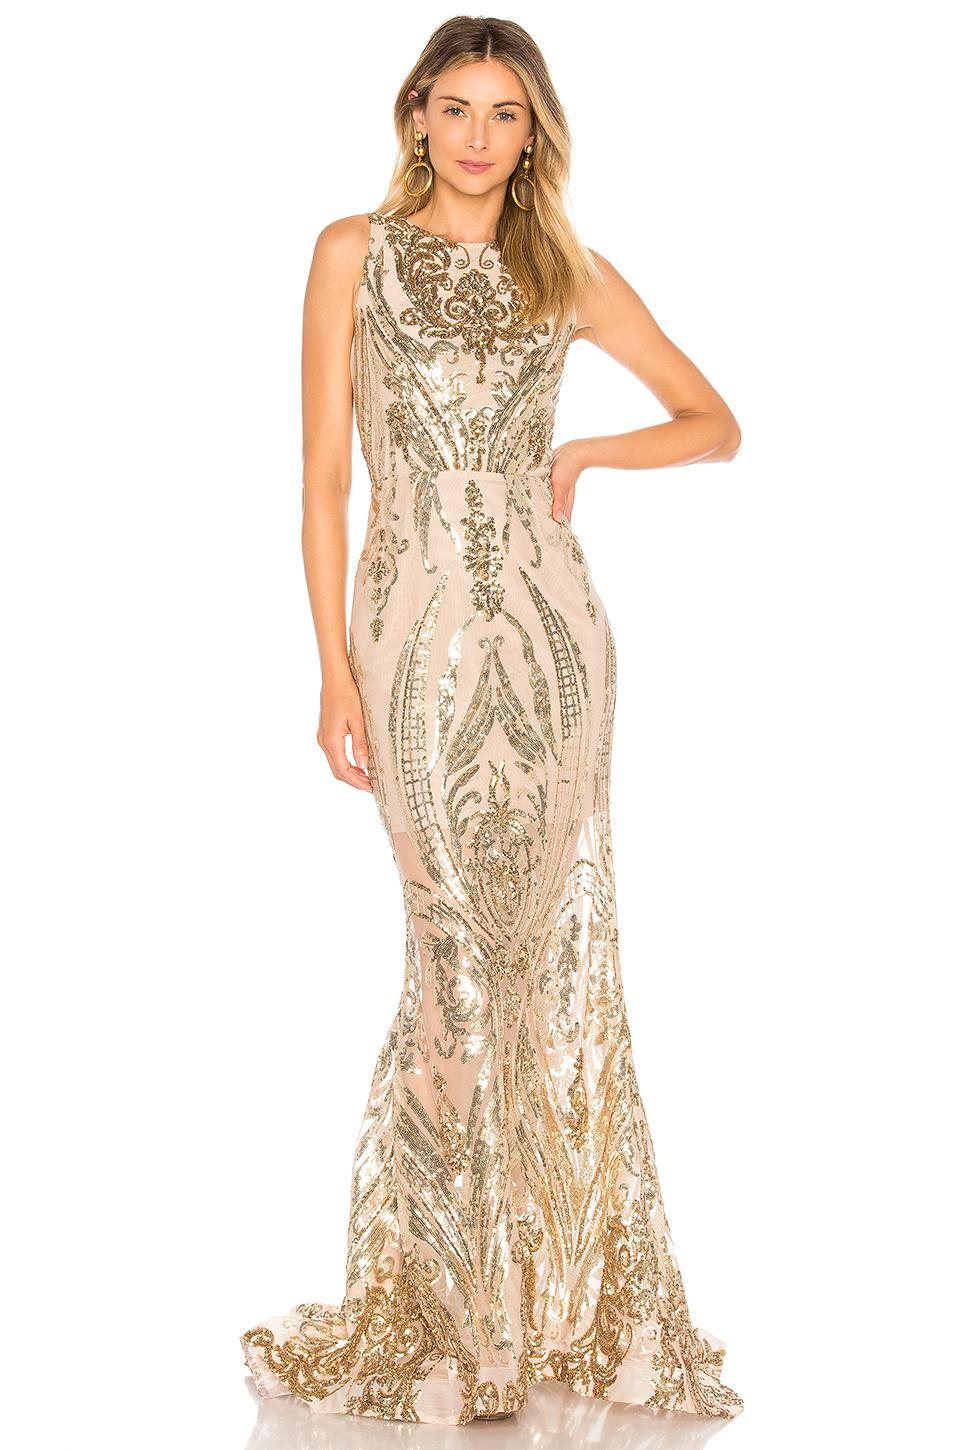 Lyst - Bronx And Banco Ester Gold Gown in Metallic